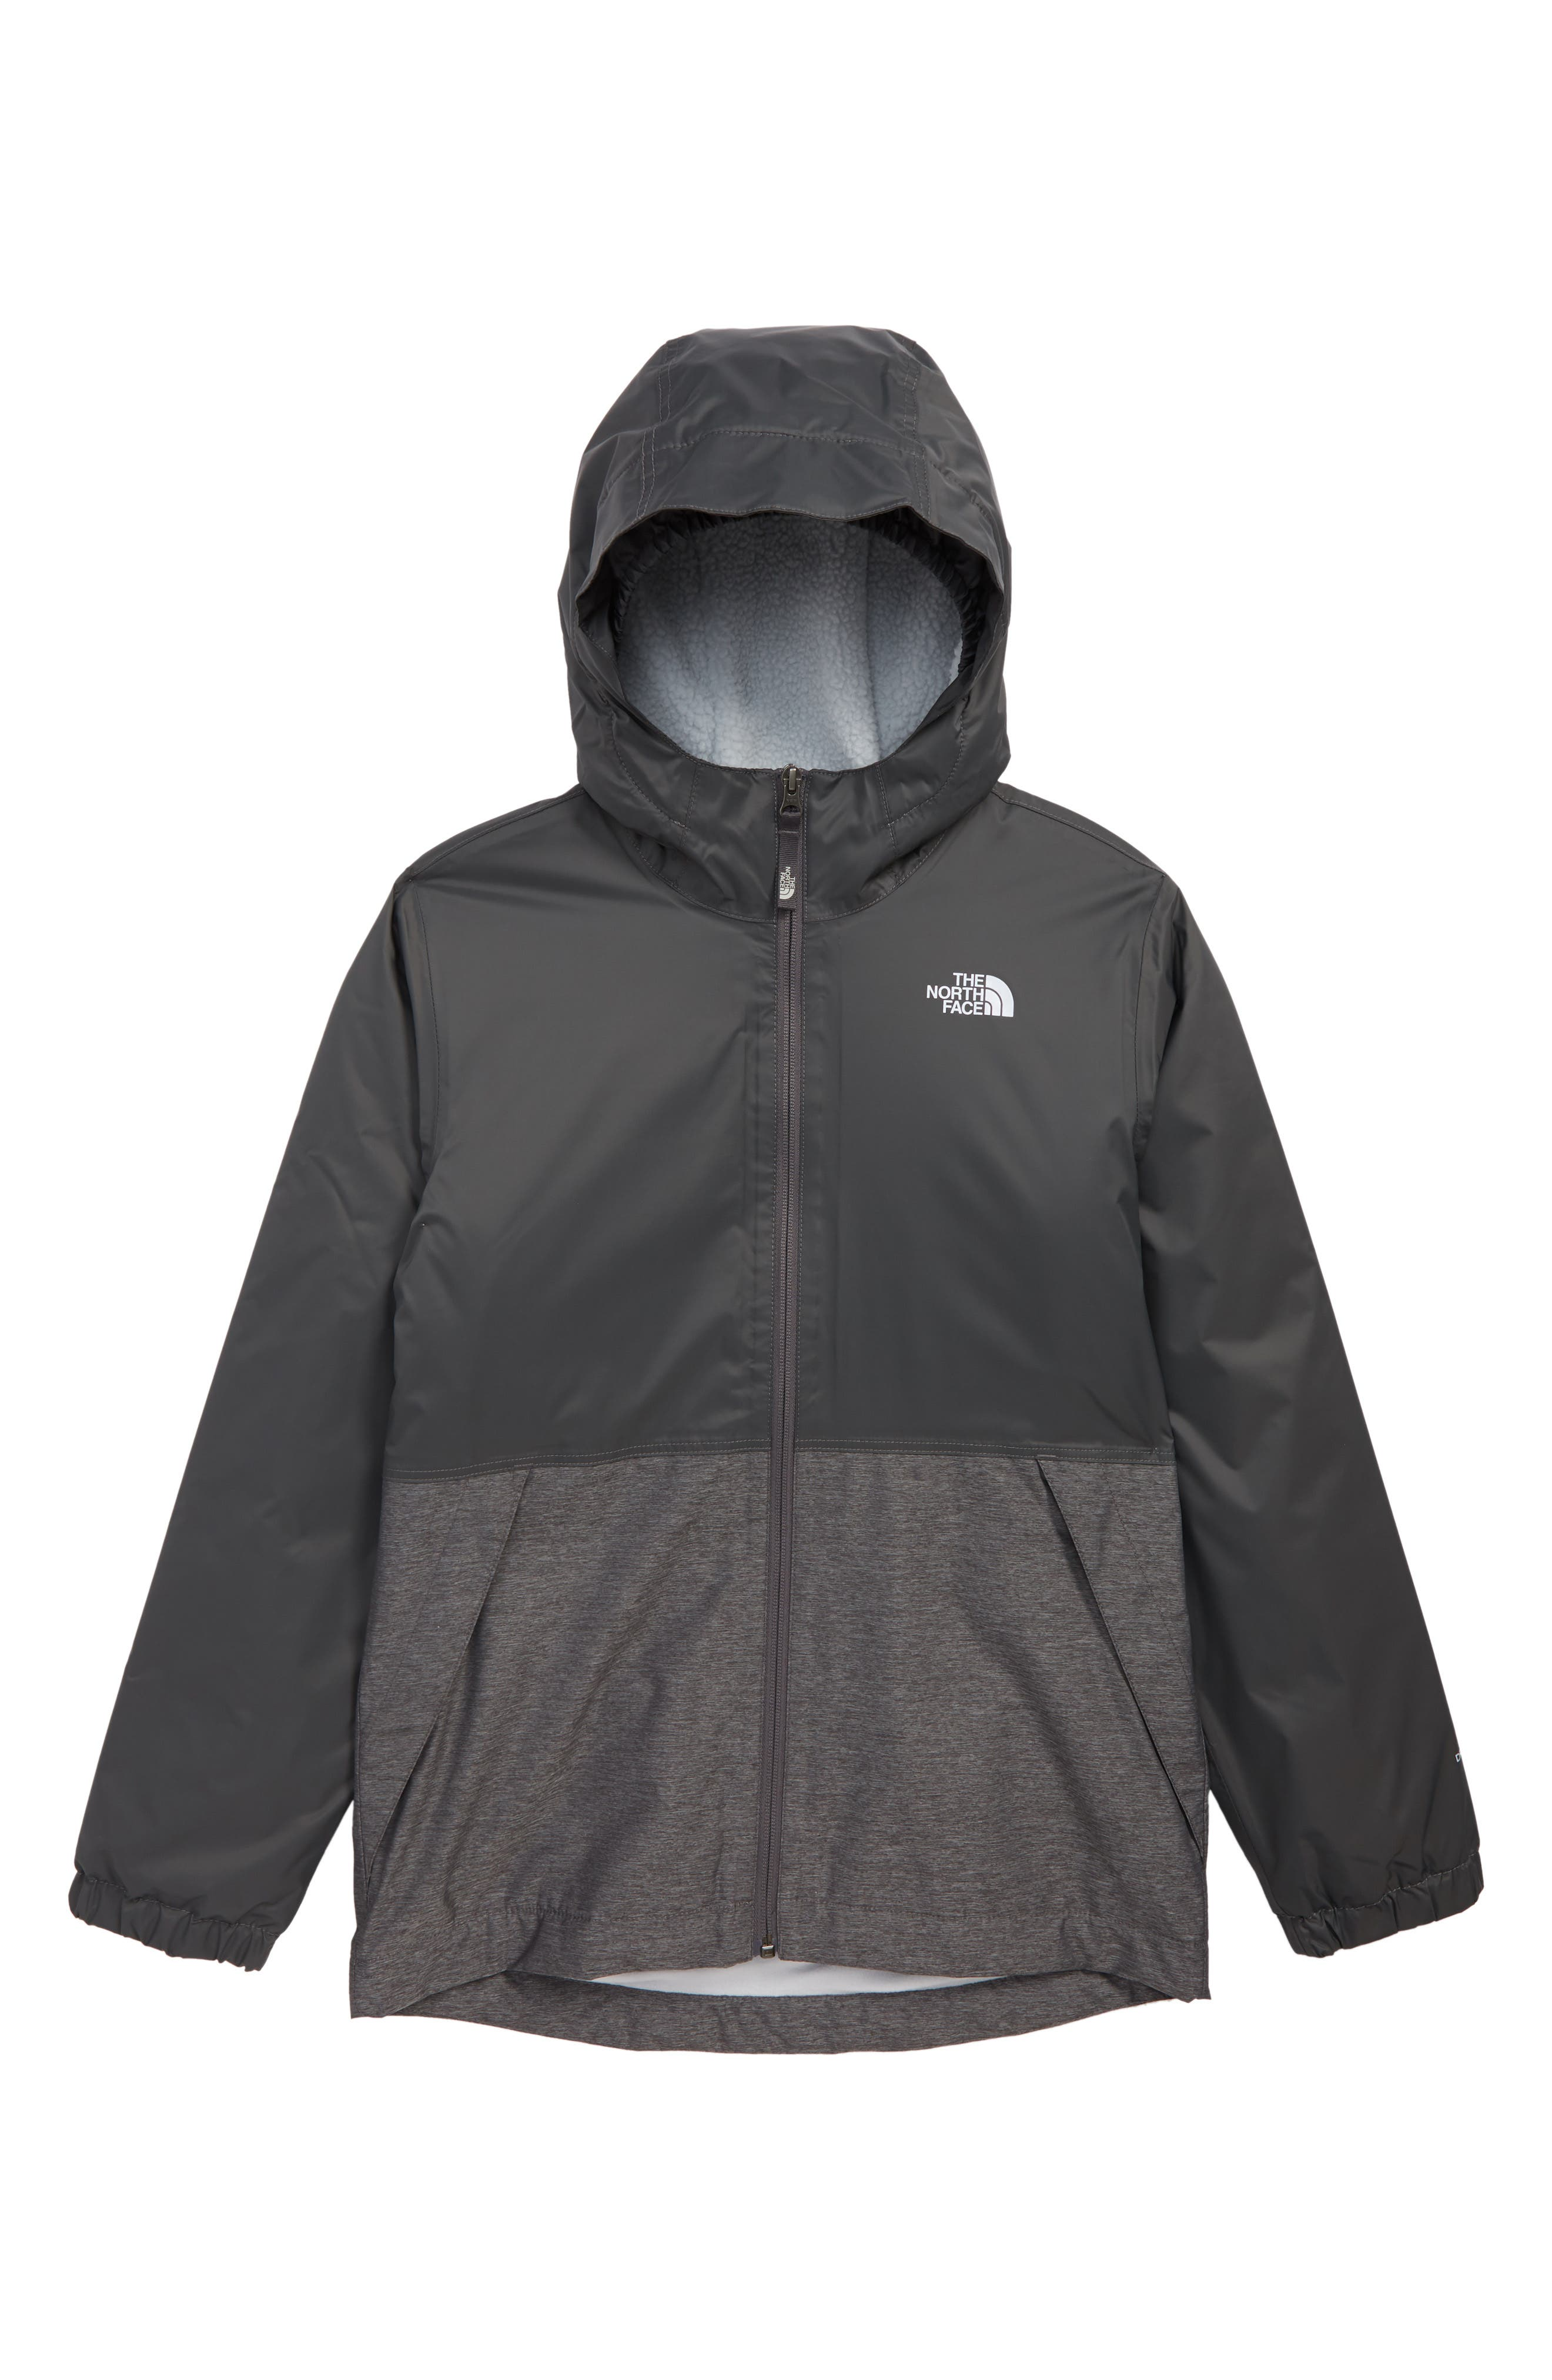 THE NORTH FACE, Warm Storm Hooded Waterproof Jacket, Main thumbnail 1, color, GRAPHITE GREY